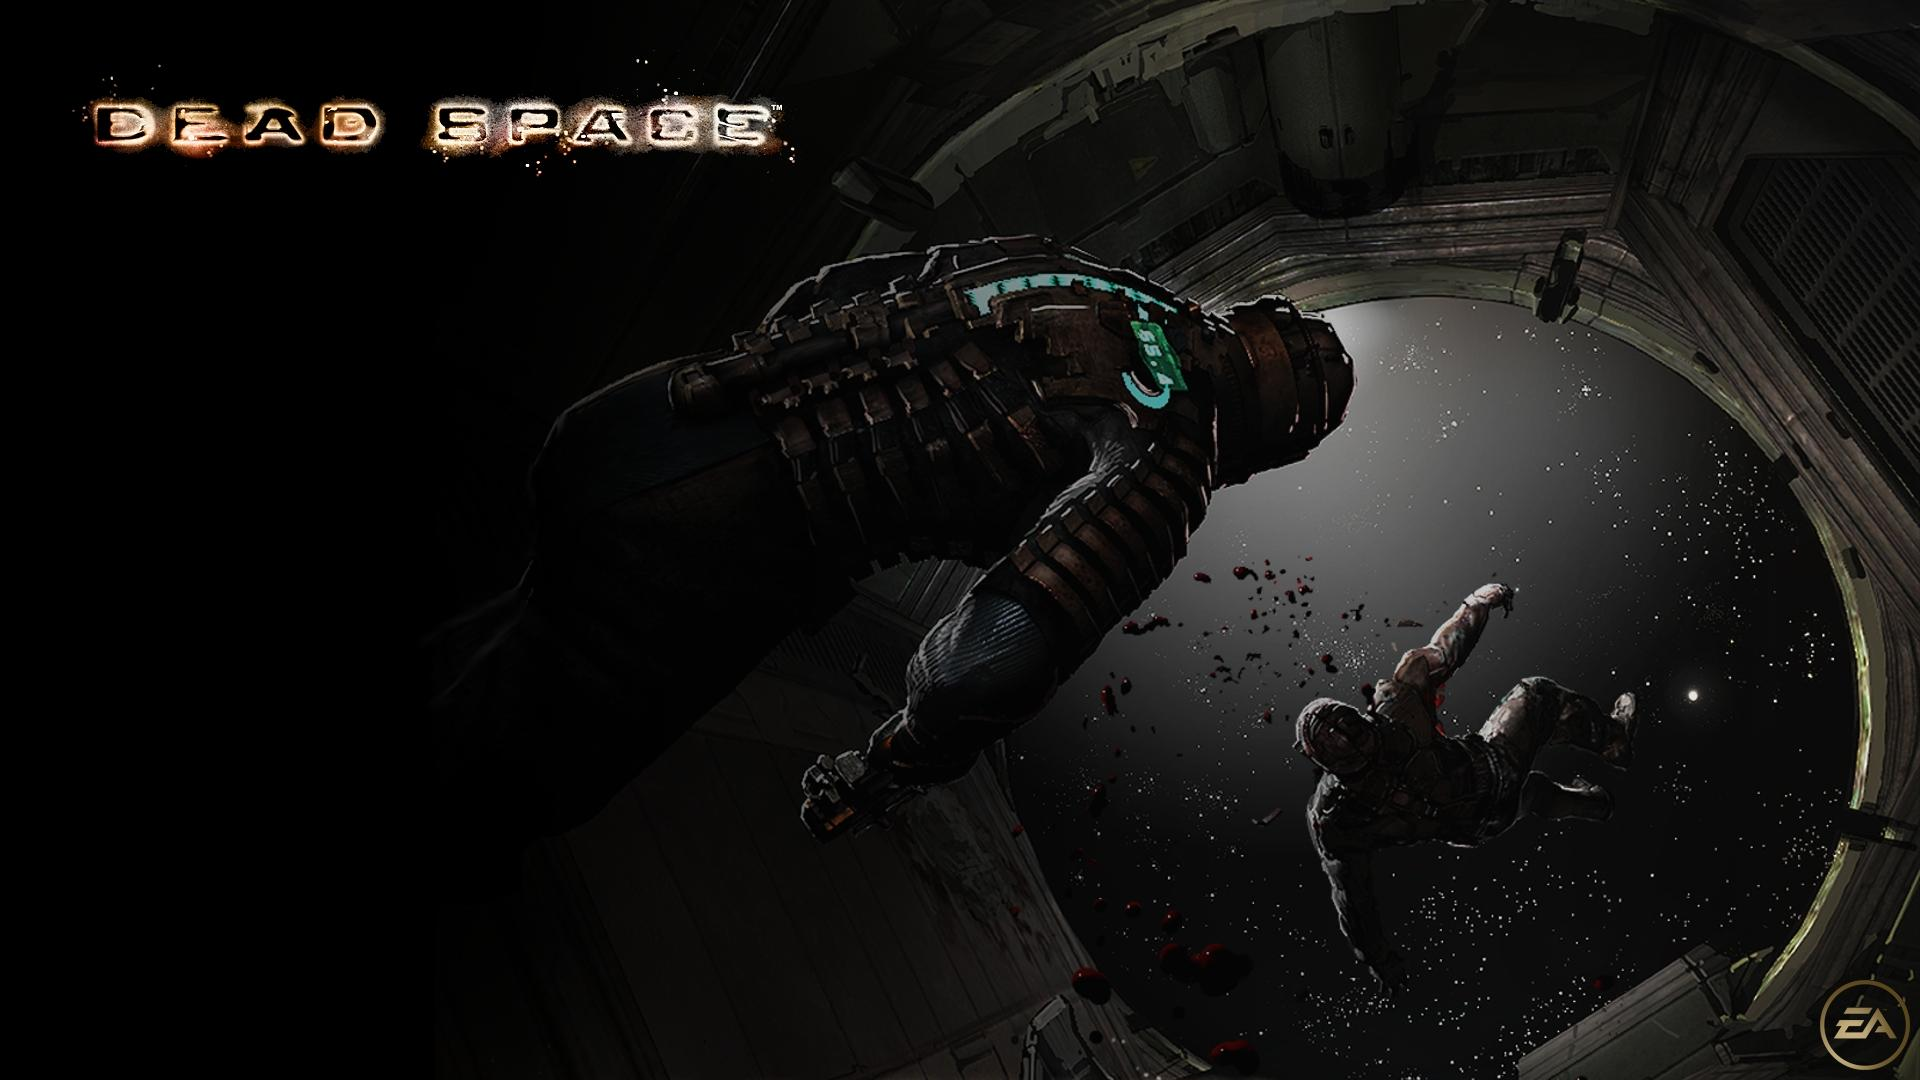 85 dead space hd wallpapers background images - Spacecraft wallpaper ...